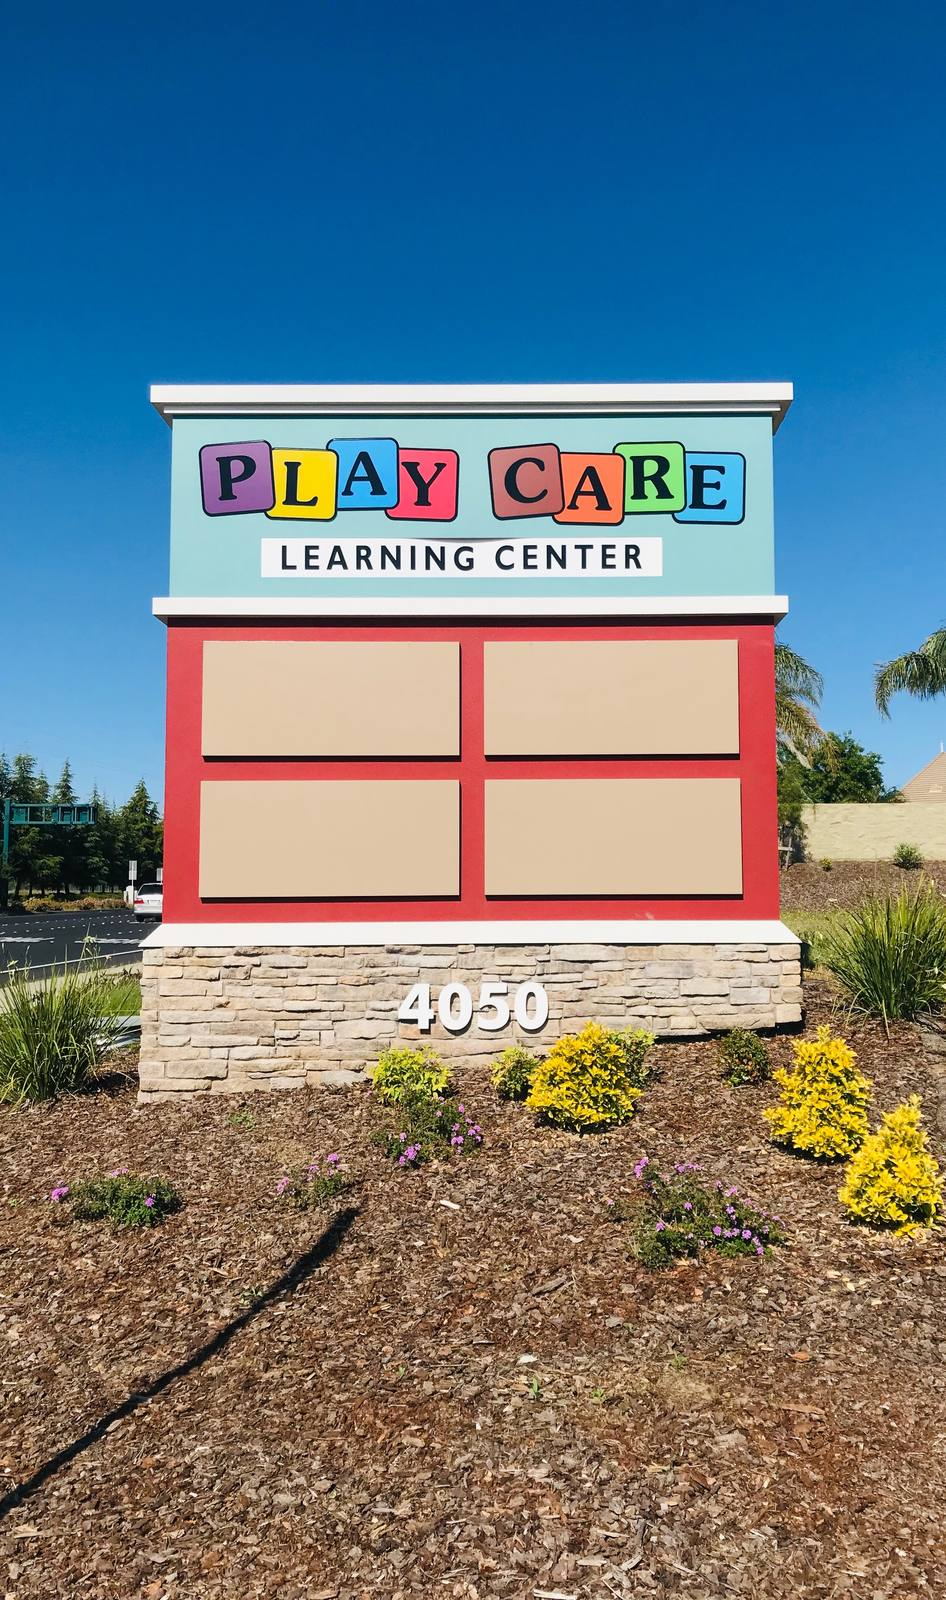 CBRE RetailPlay Care Learning Center Plaza4070-4100 Baseline Road  Photo